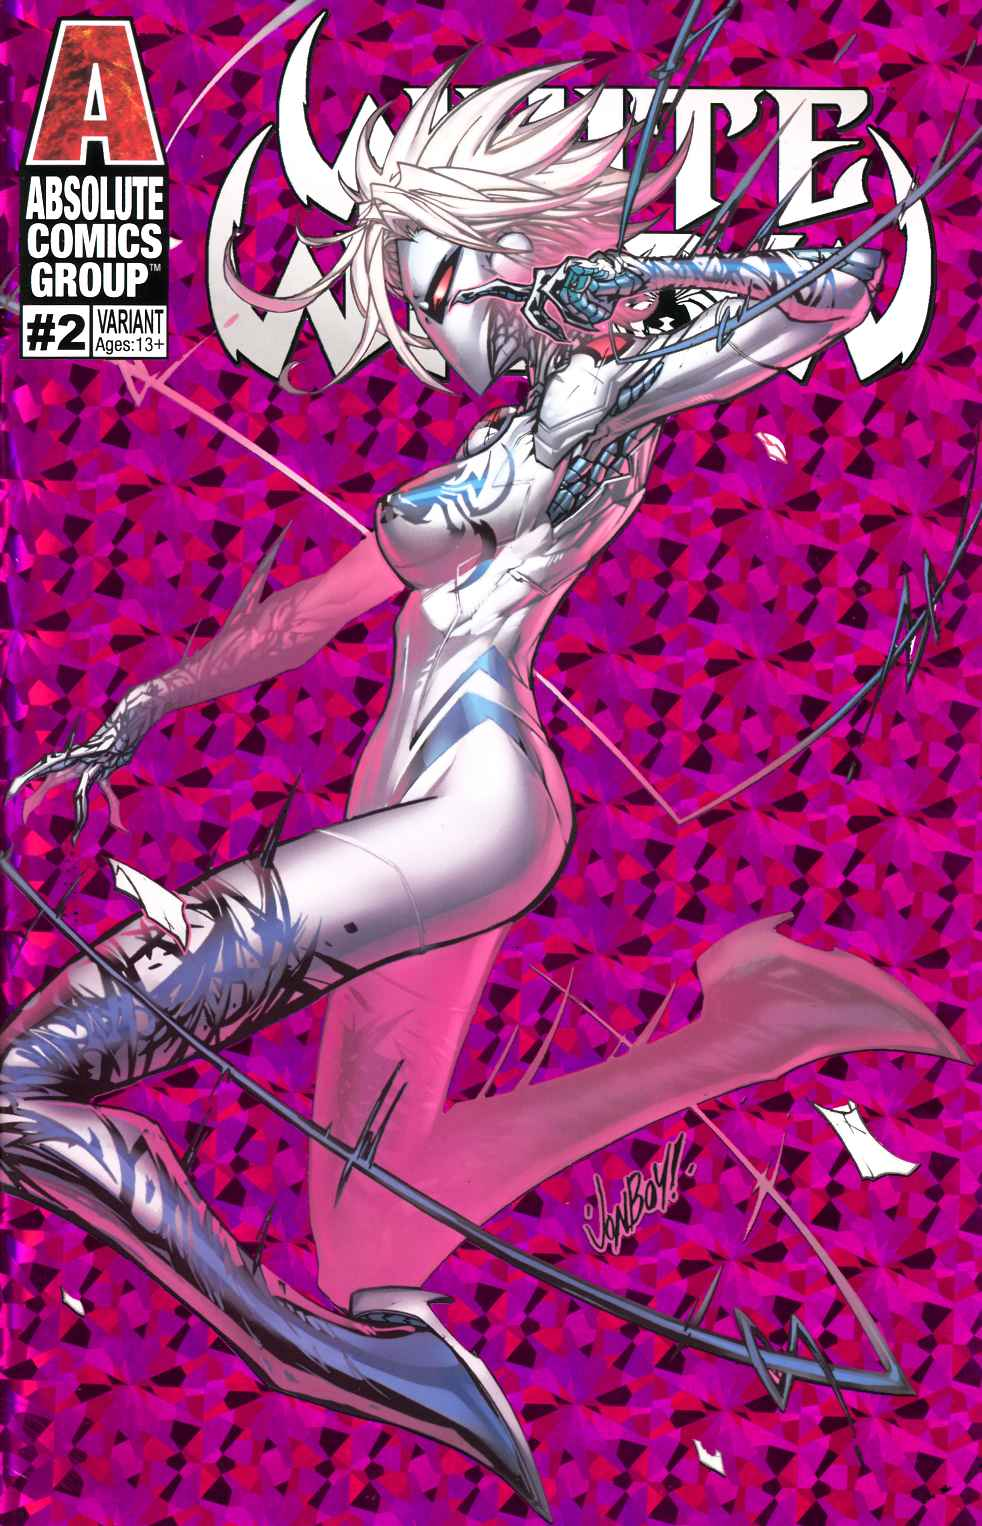 White Widow #2 Pretty in Pink Variant Cover Near Mint (9.4) [Absolute Comic] THUMBNAIL